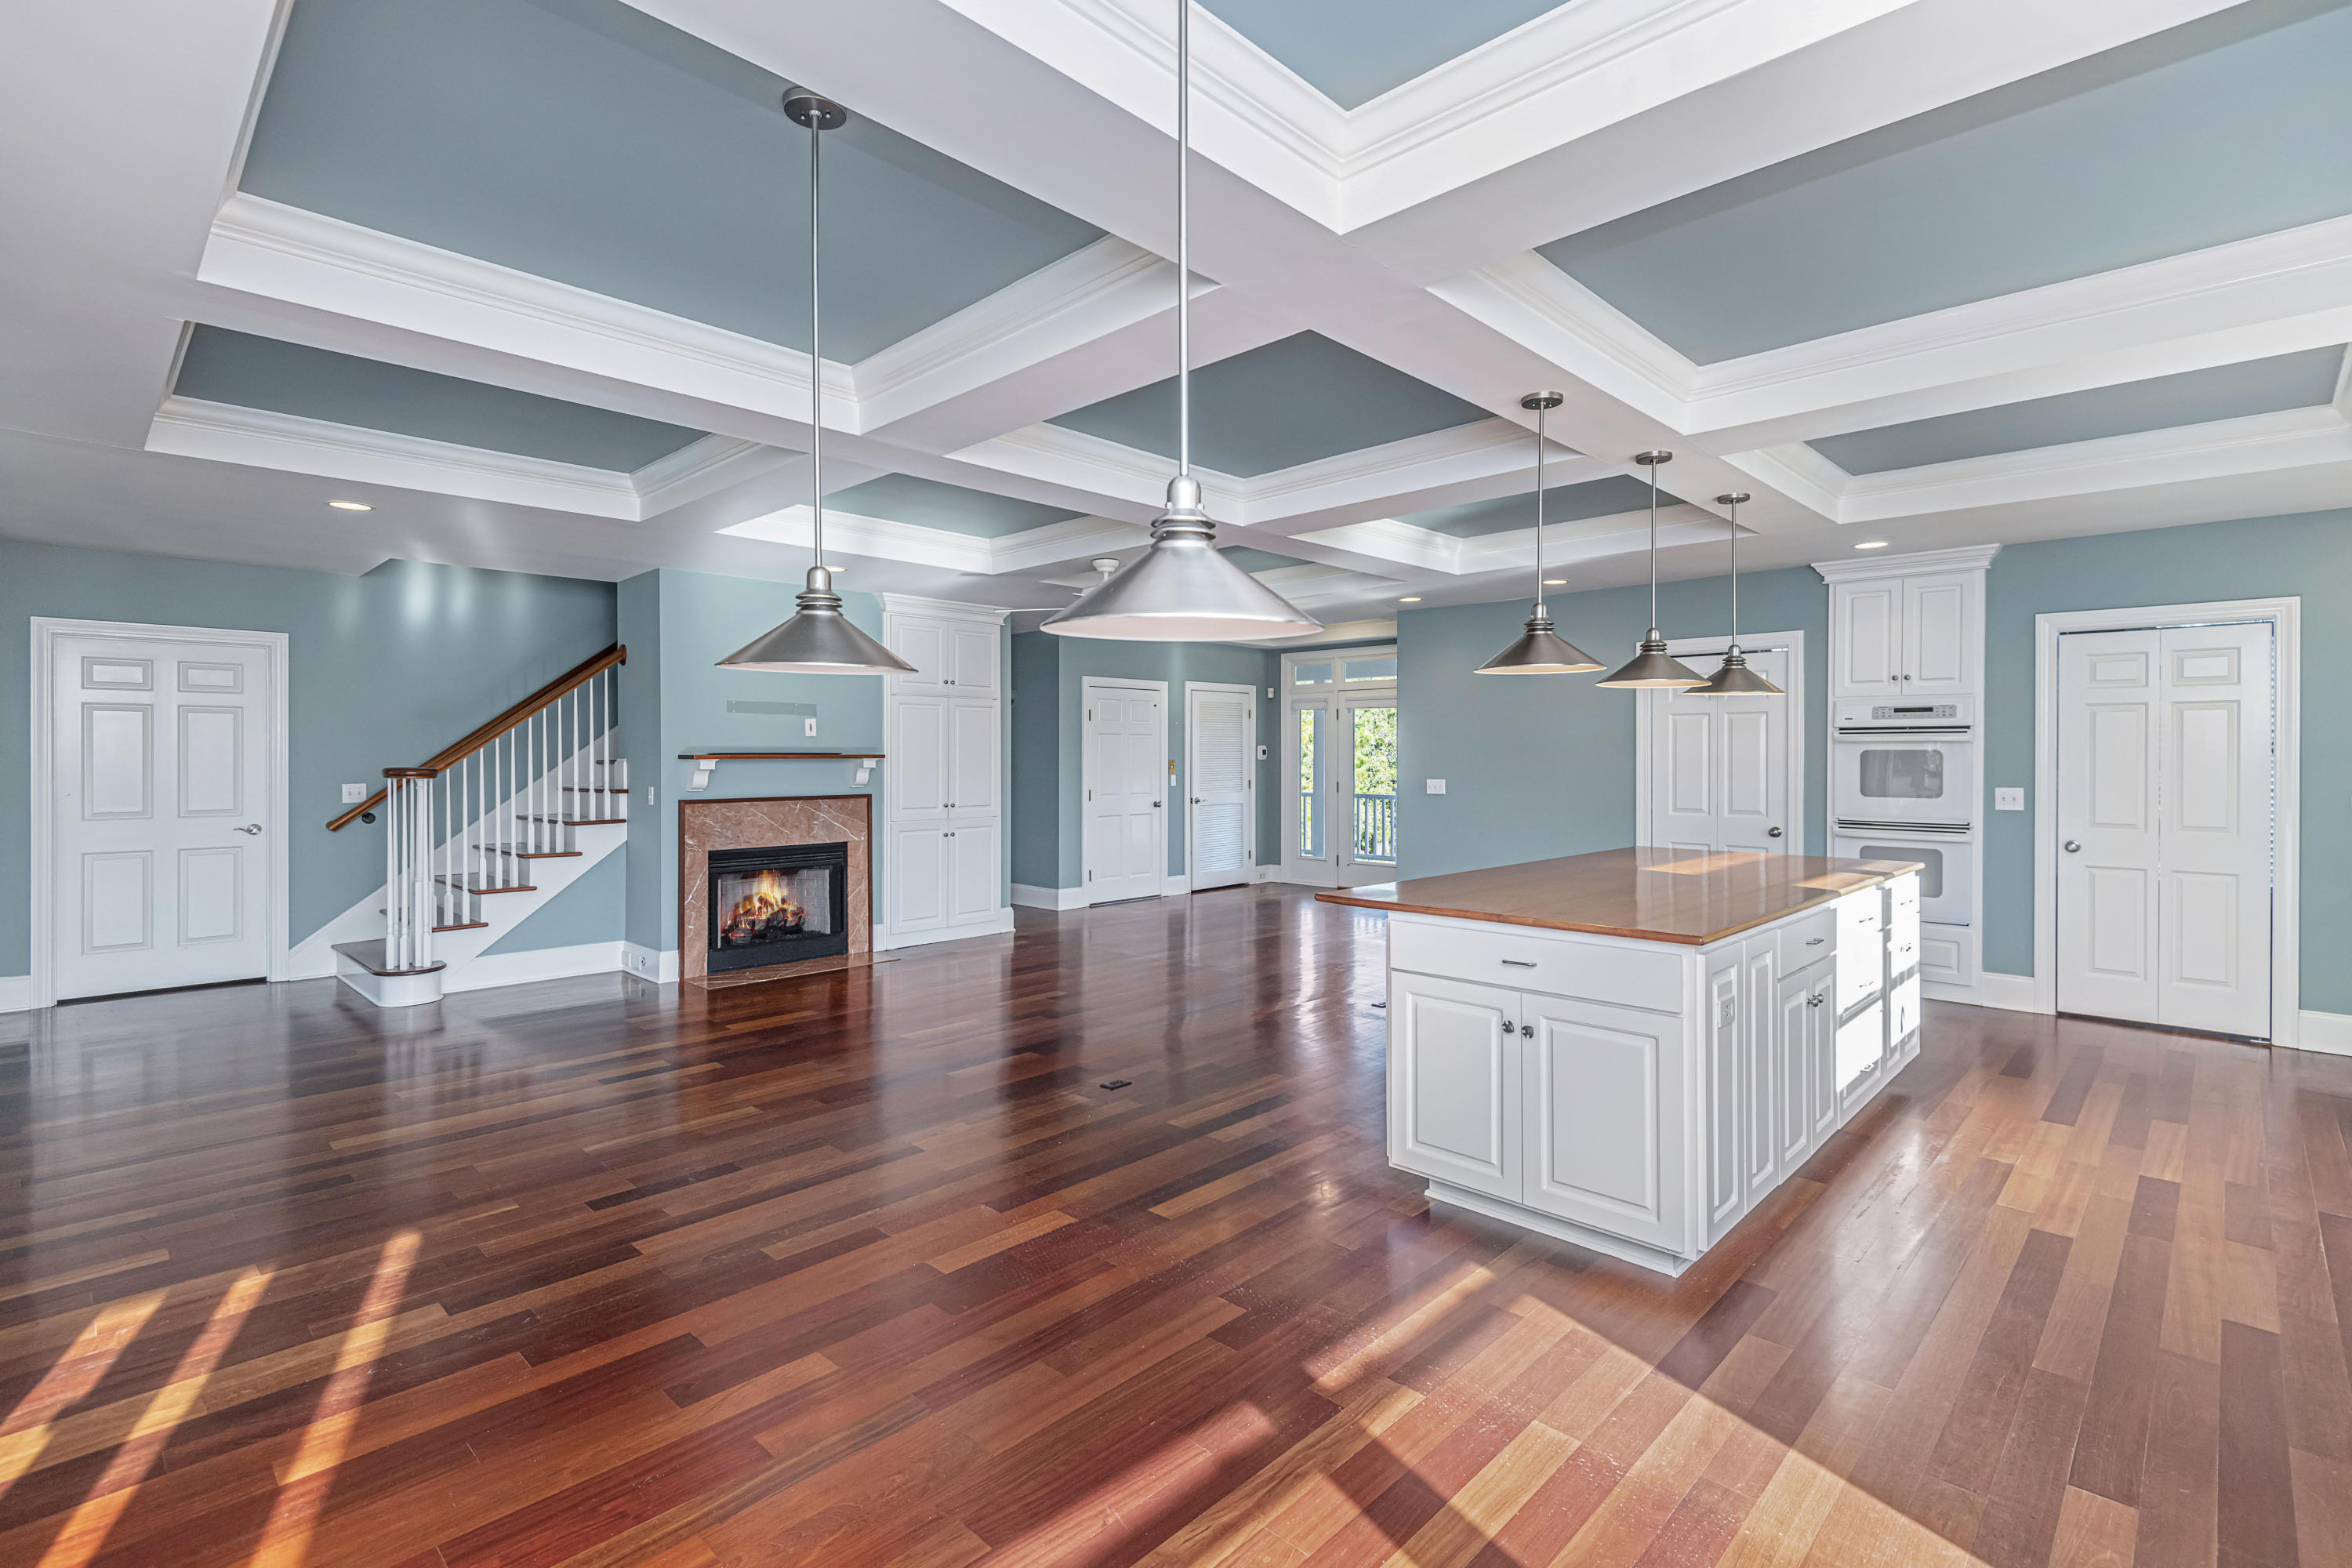 Stratton Place Homes For Sale - 1455 Stratton, Mount Pleasant, SC - 60